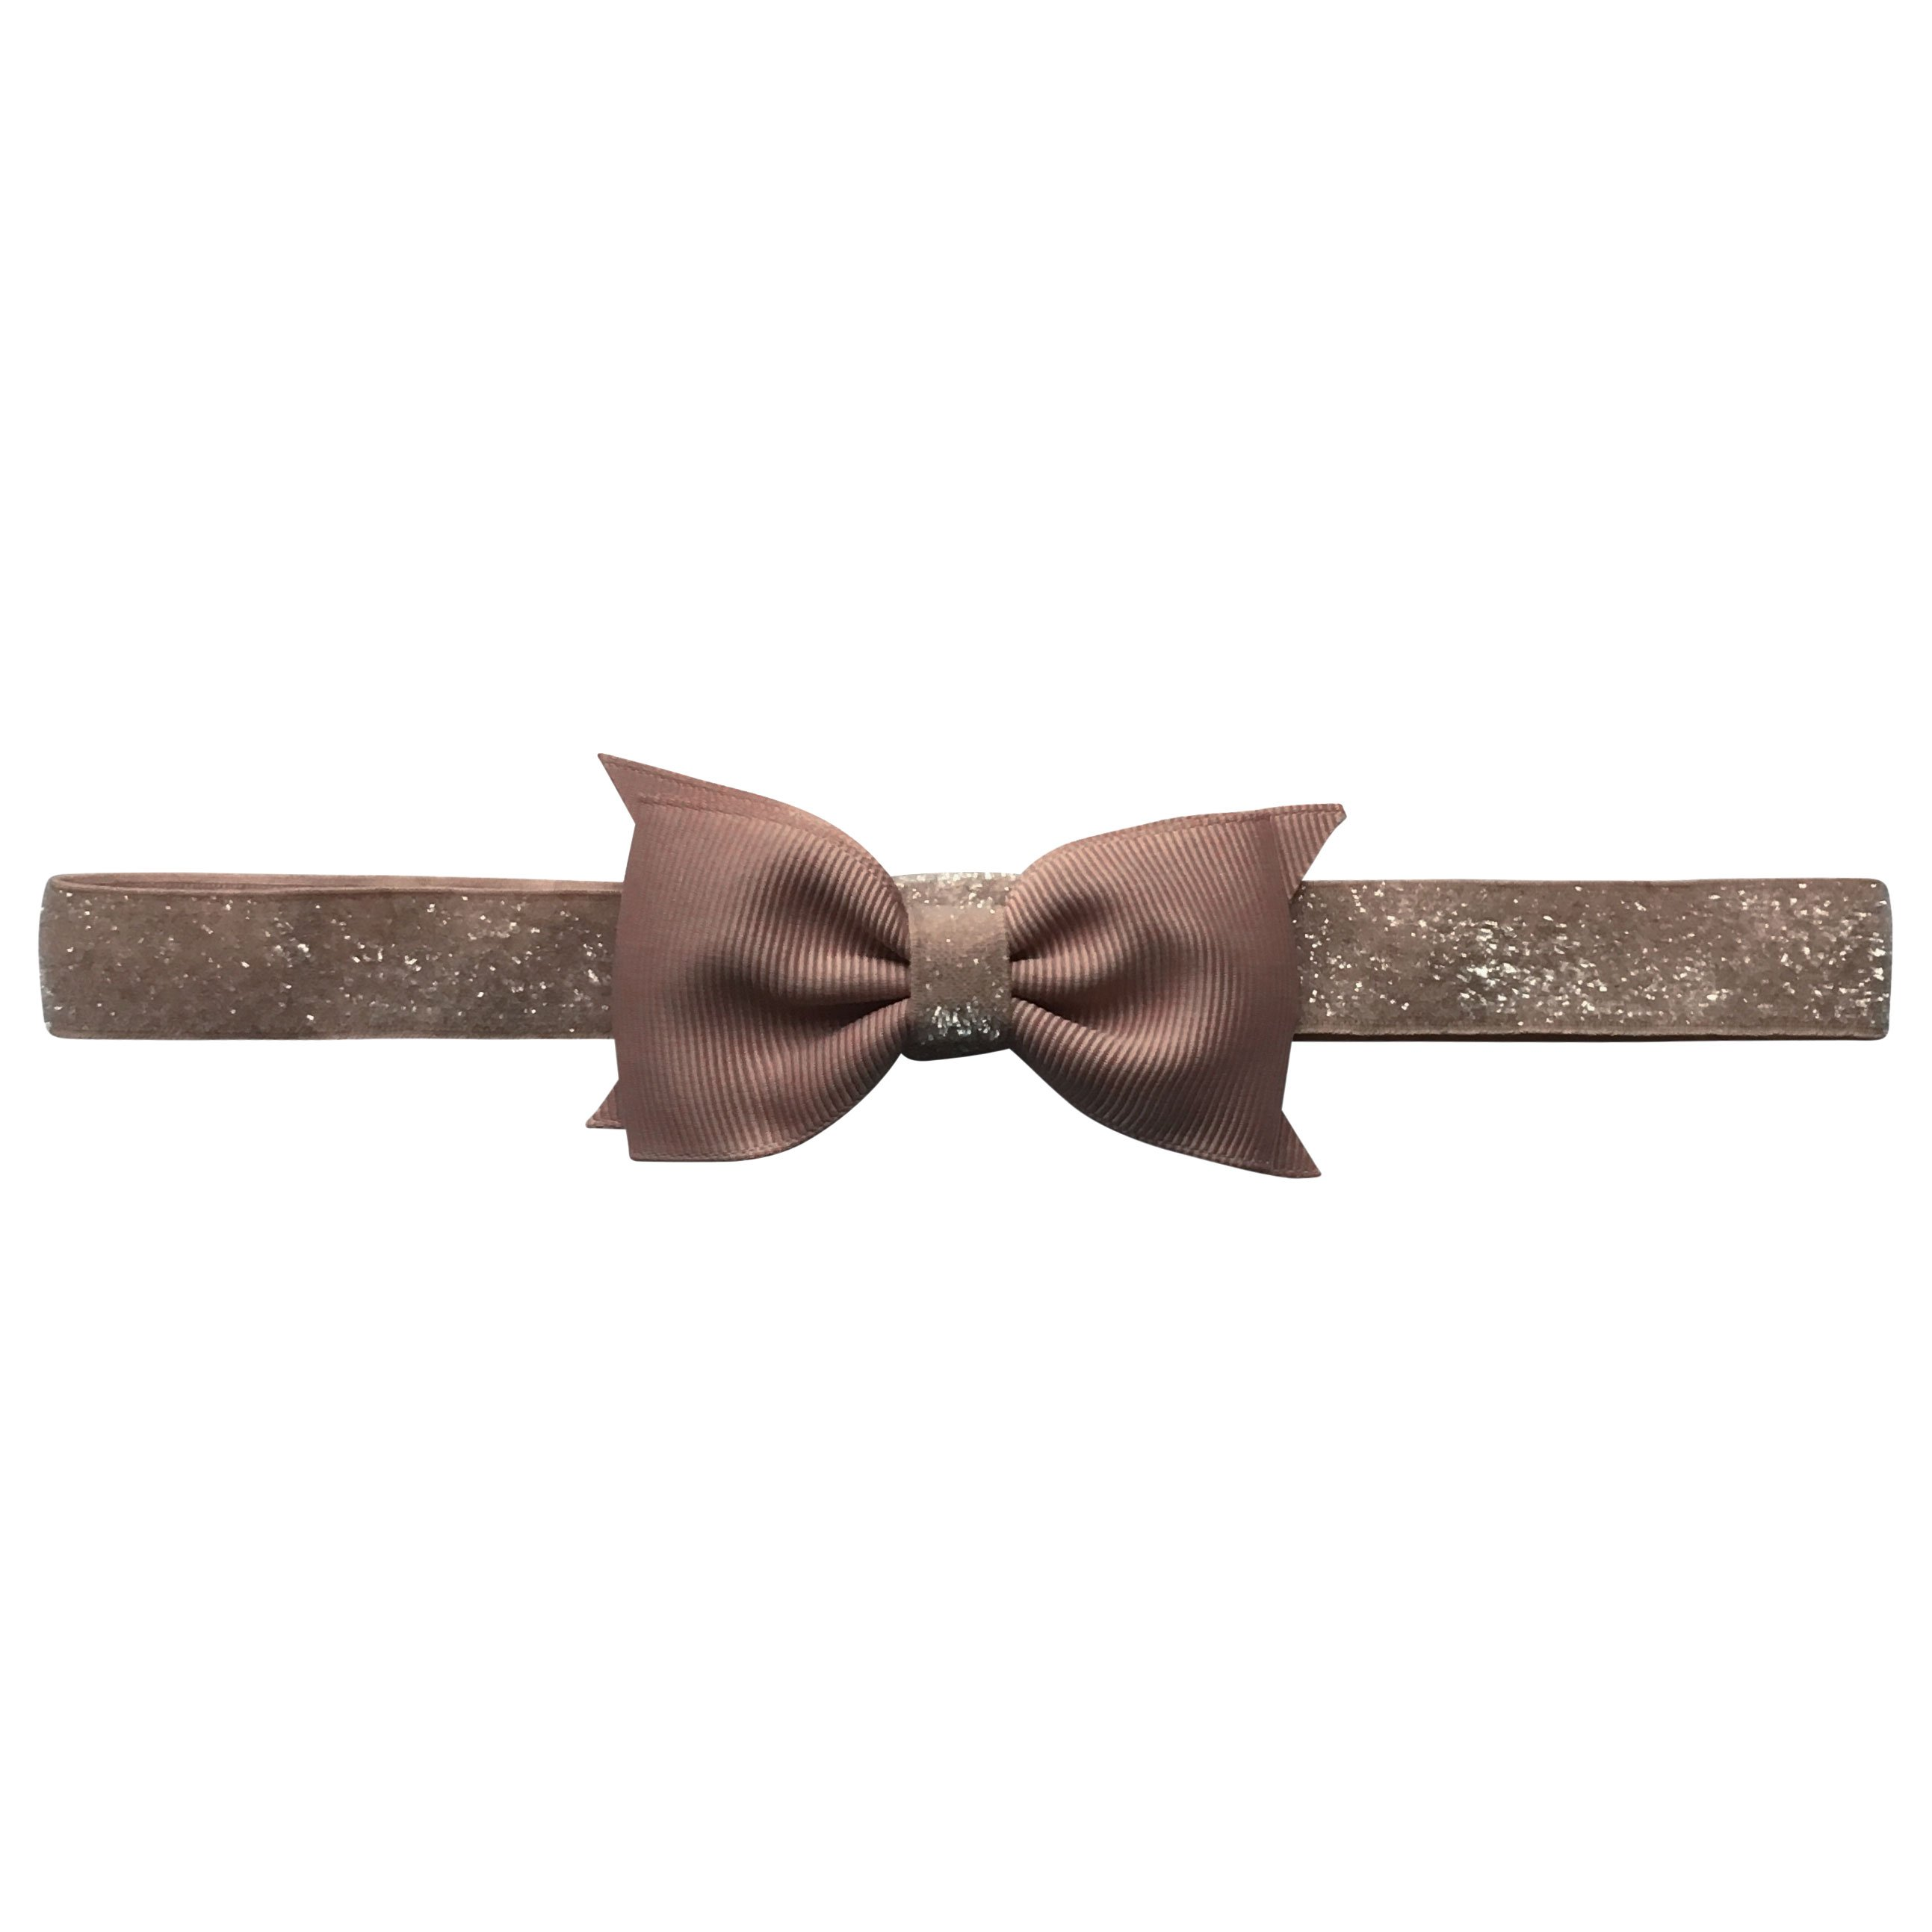 Image of   Double Bowtie Milledeux bow - elastic hairband - chocolate chip colored glitter